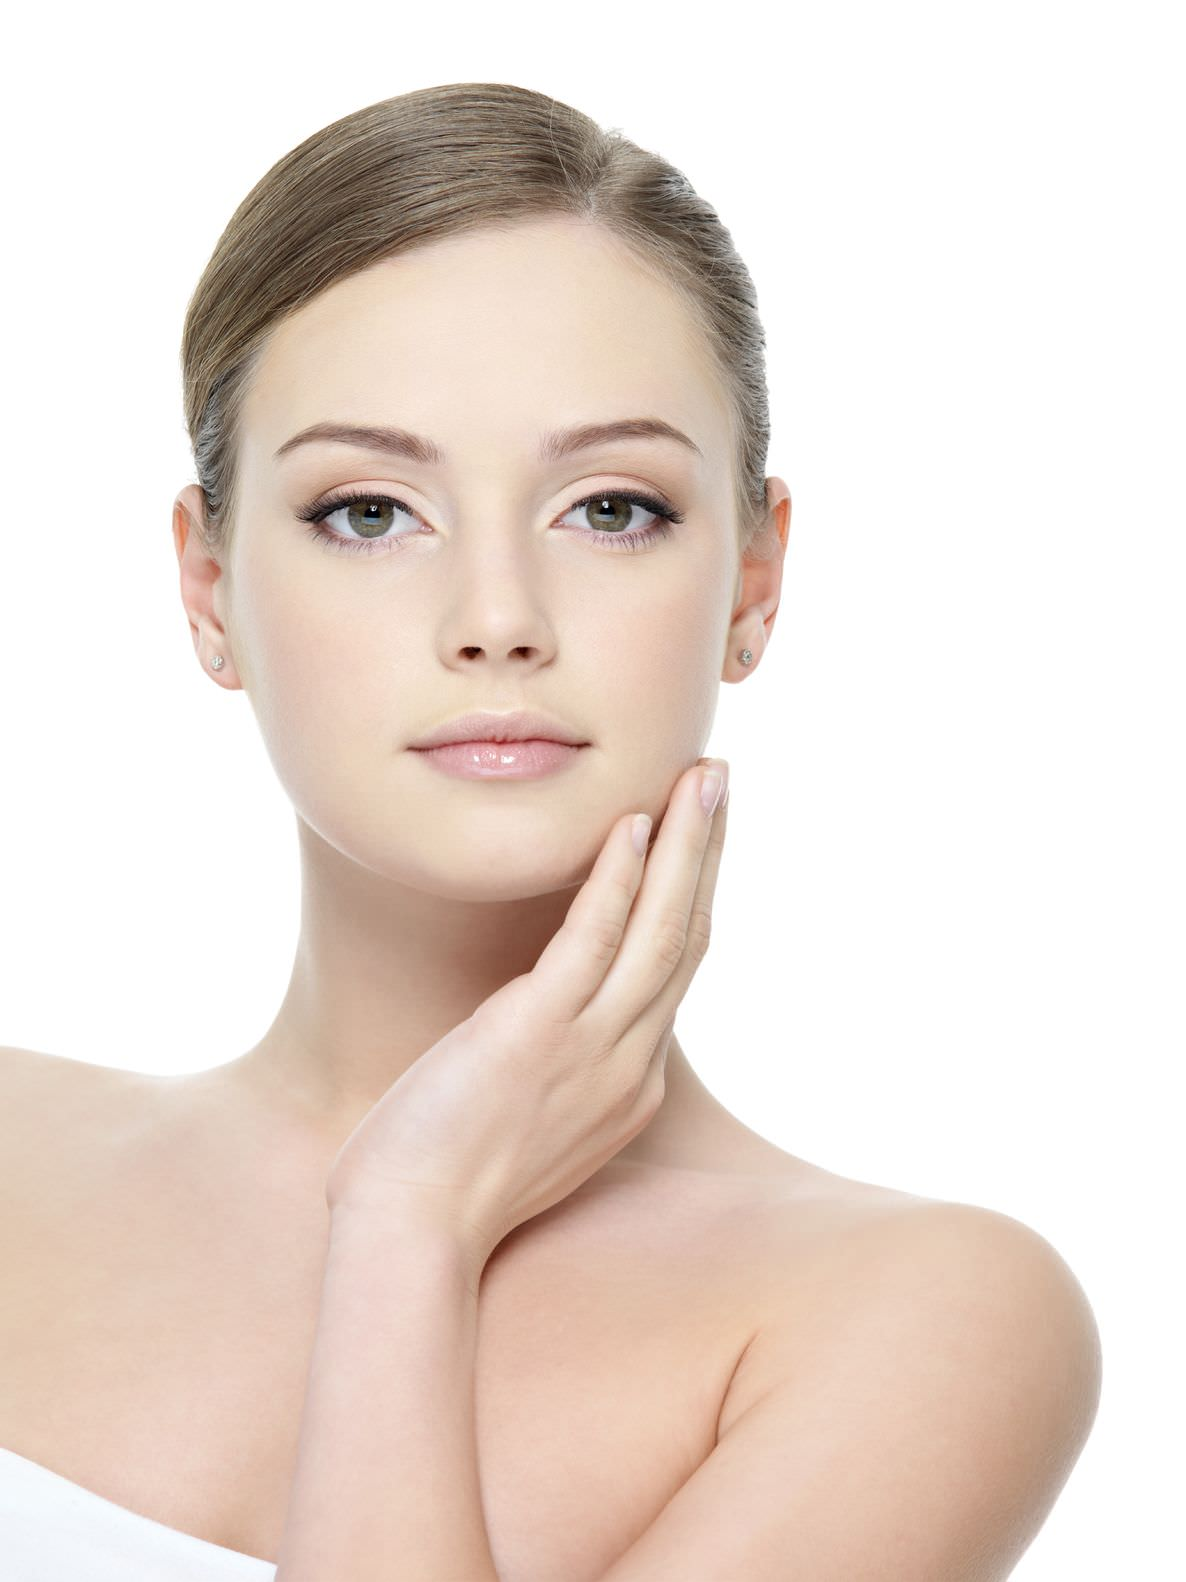 Minimally invasive cosmetic procedures